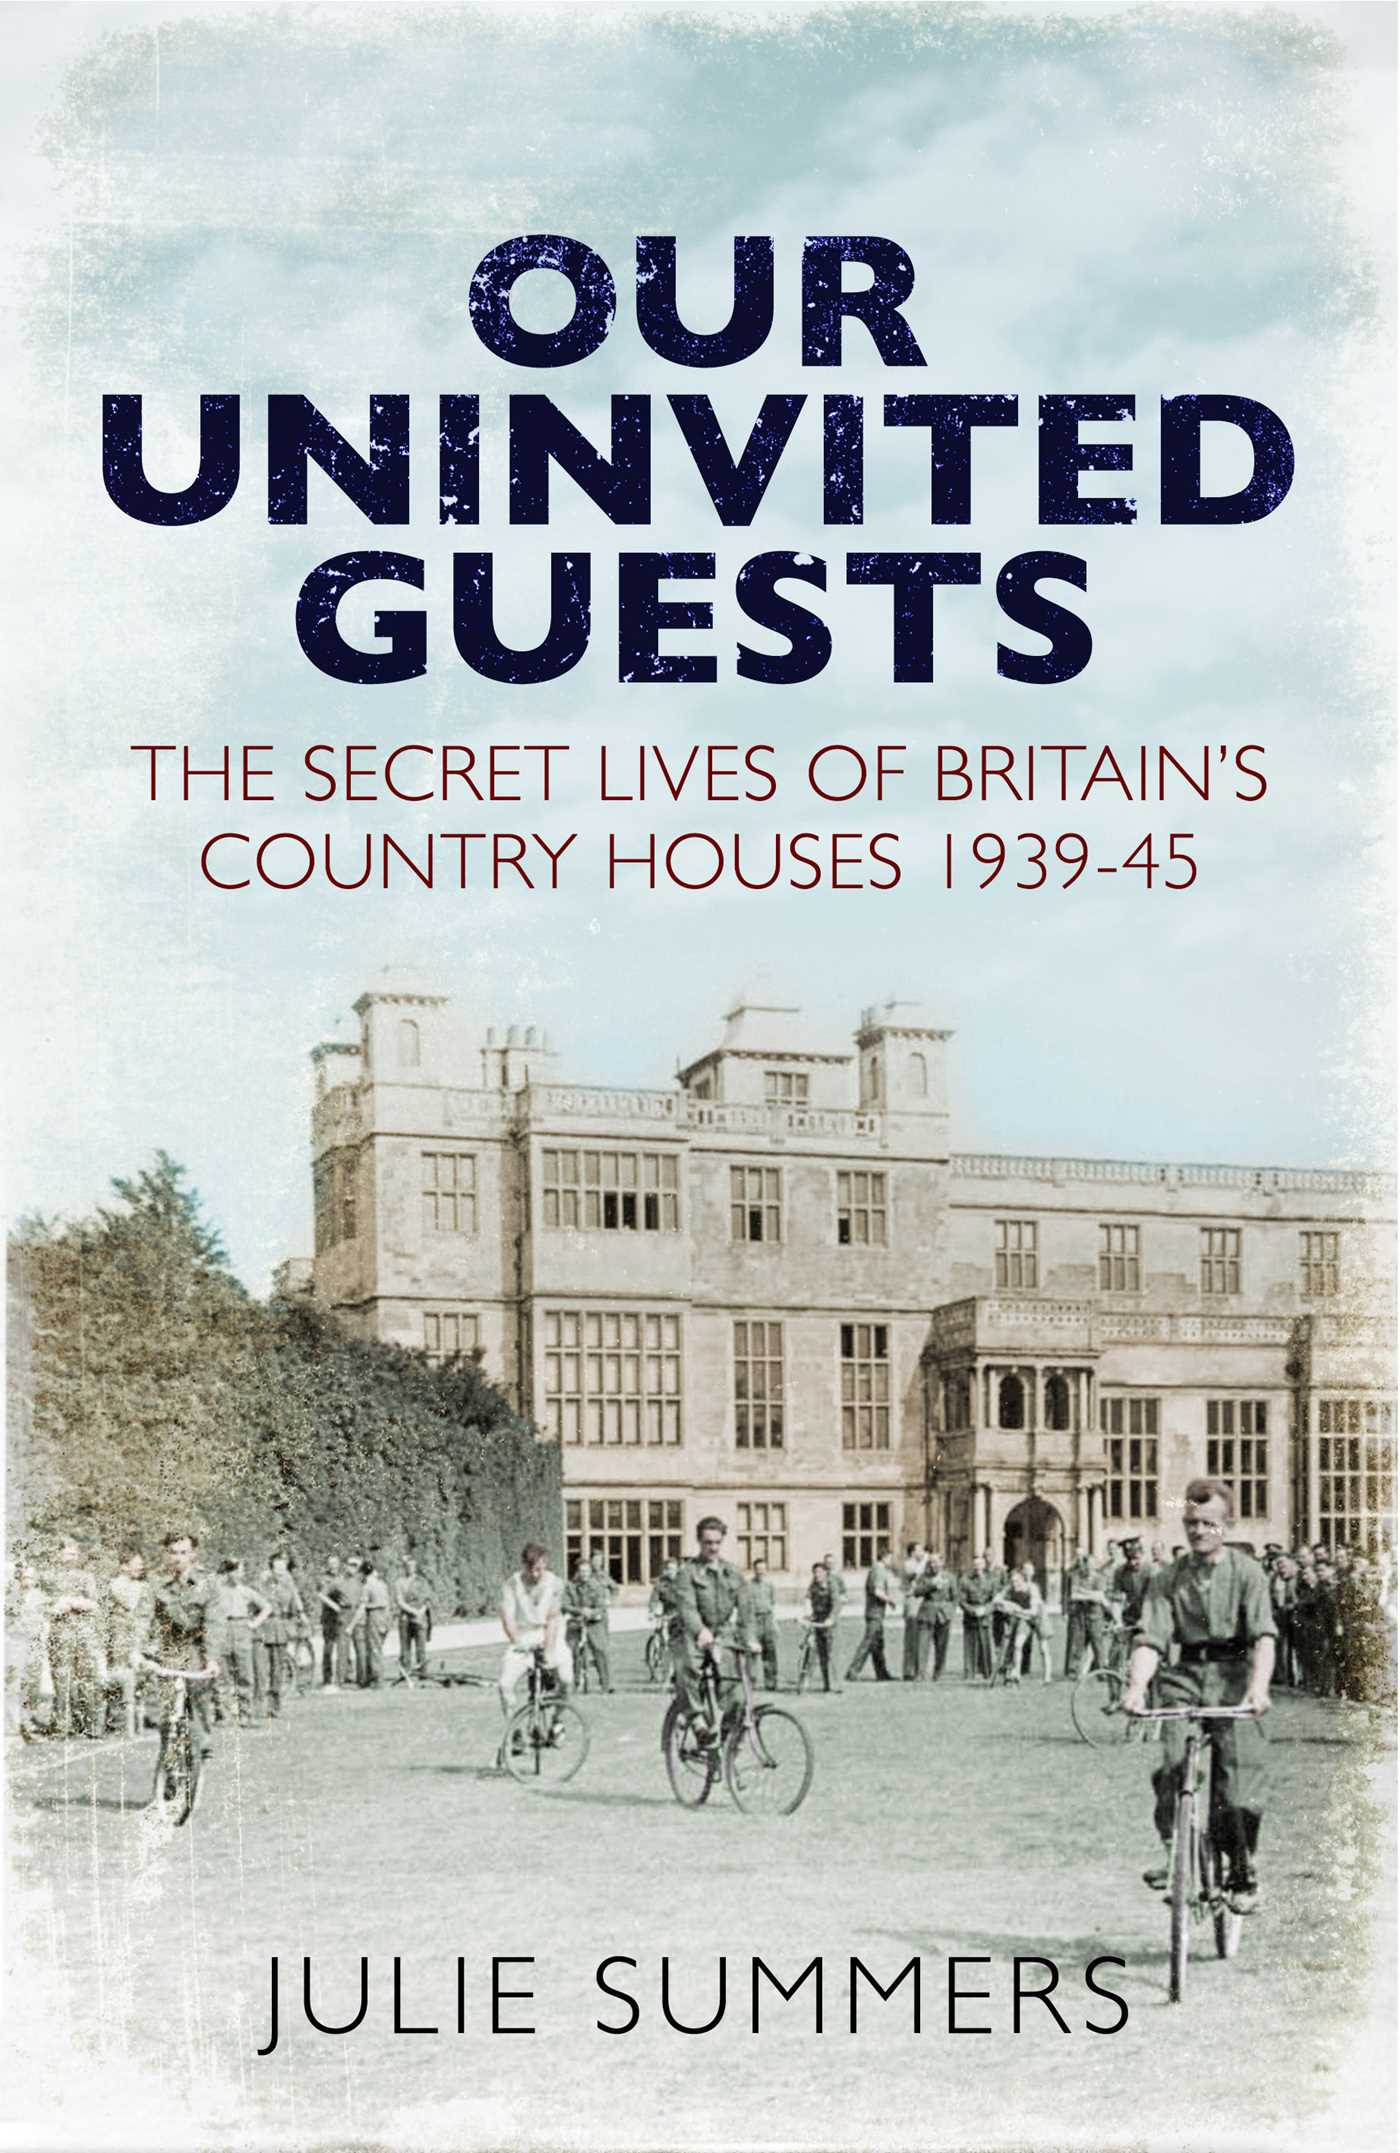 Our uninvited guests 9781471152535 hr